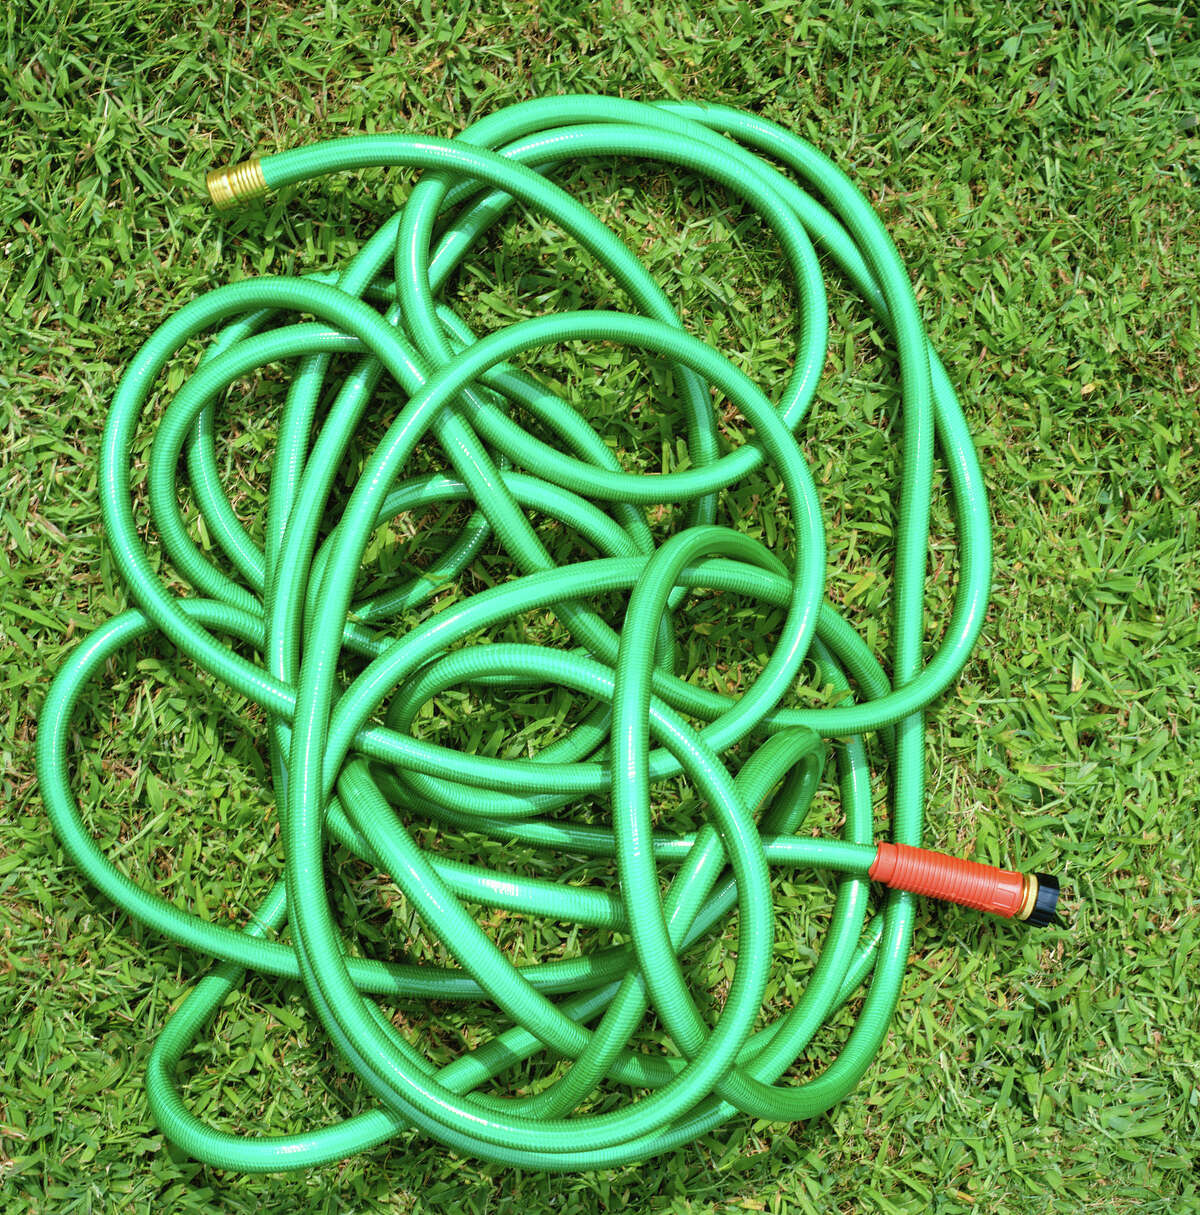 1. Remove all attached exterior hoses, drain and store them.